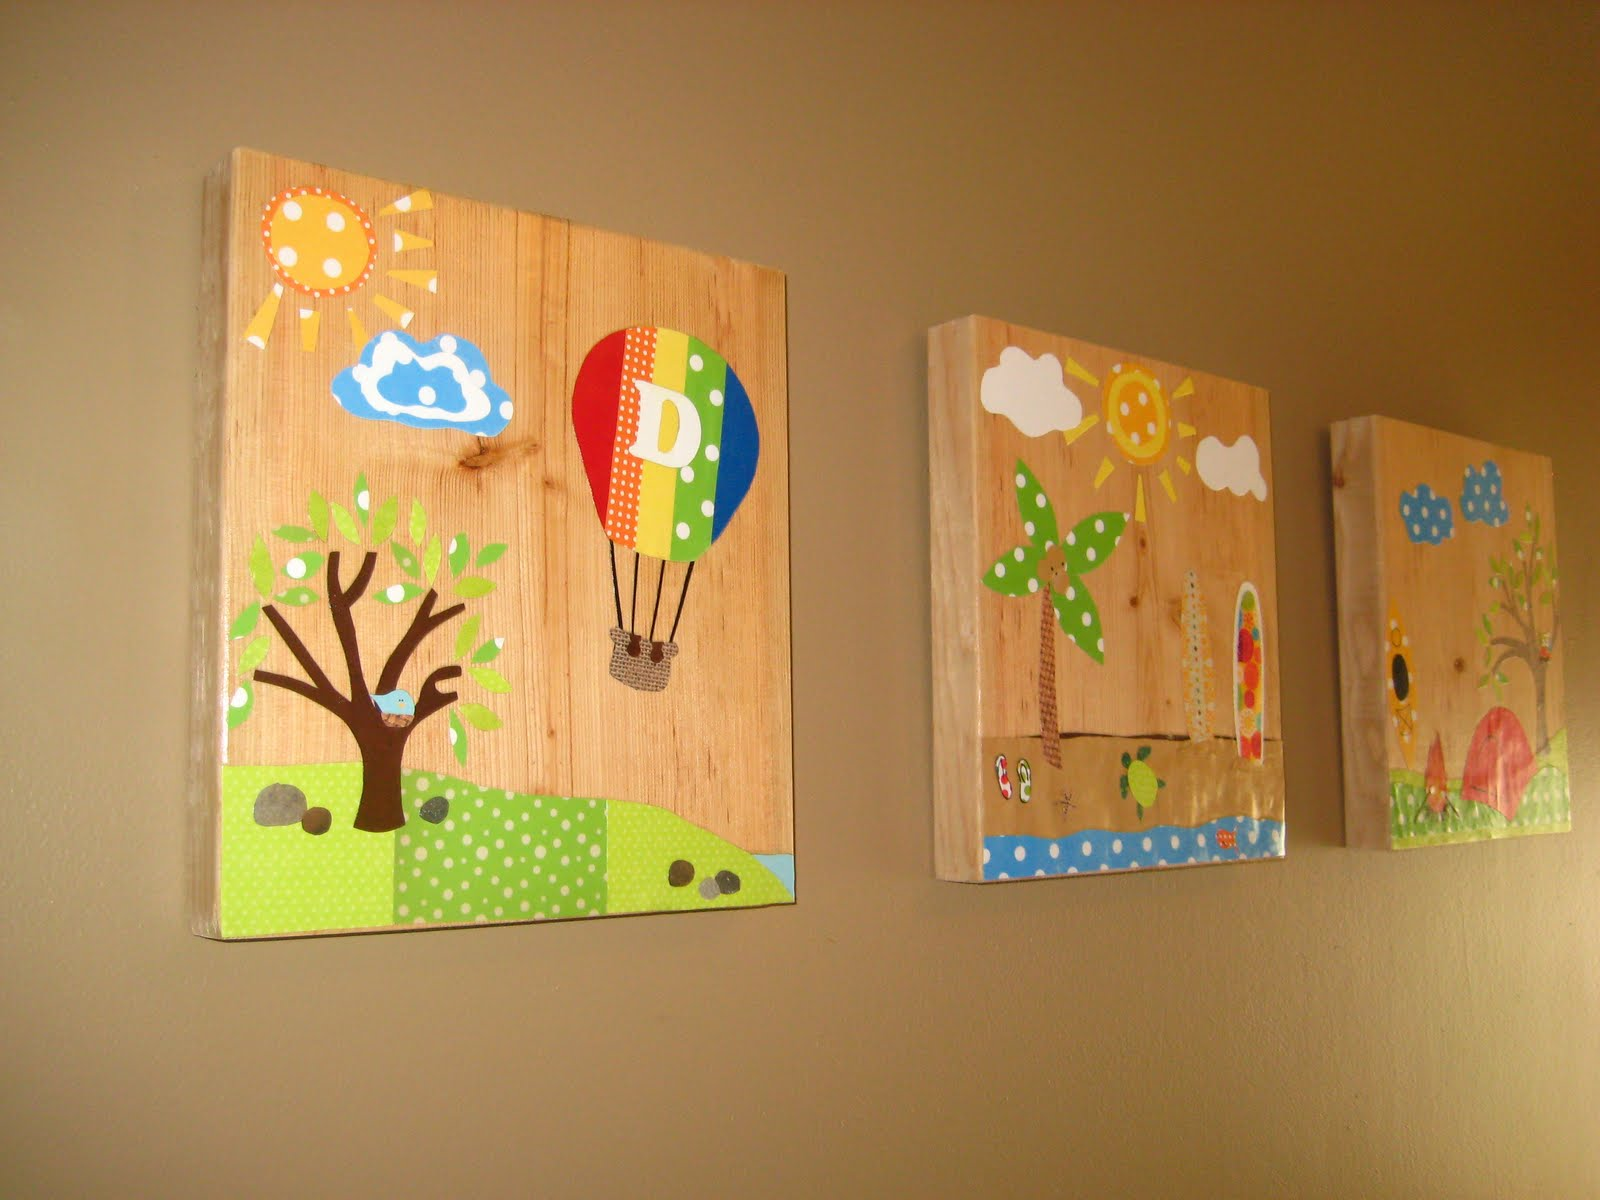 Diy Wall Art For Toddlers : Diy art for kids rooms design dazzle